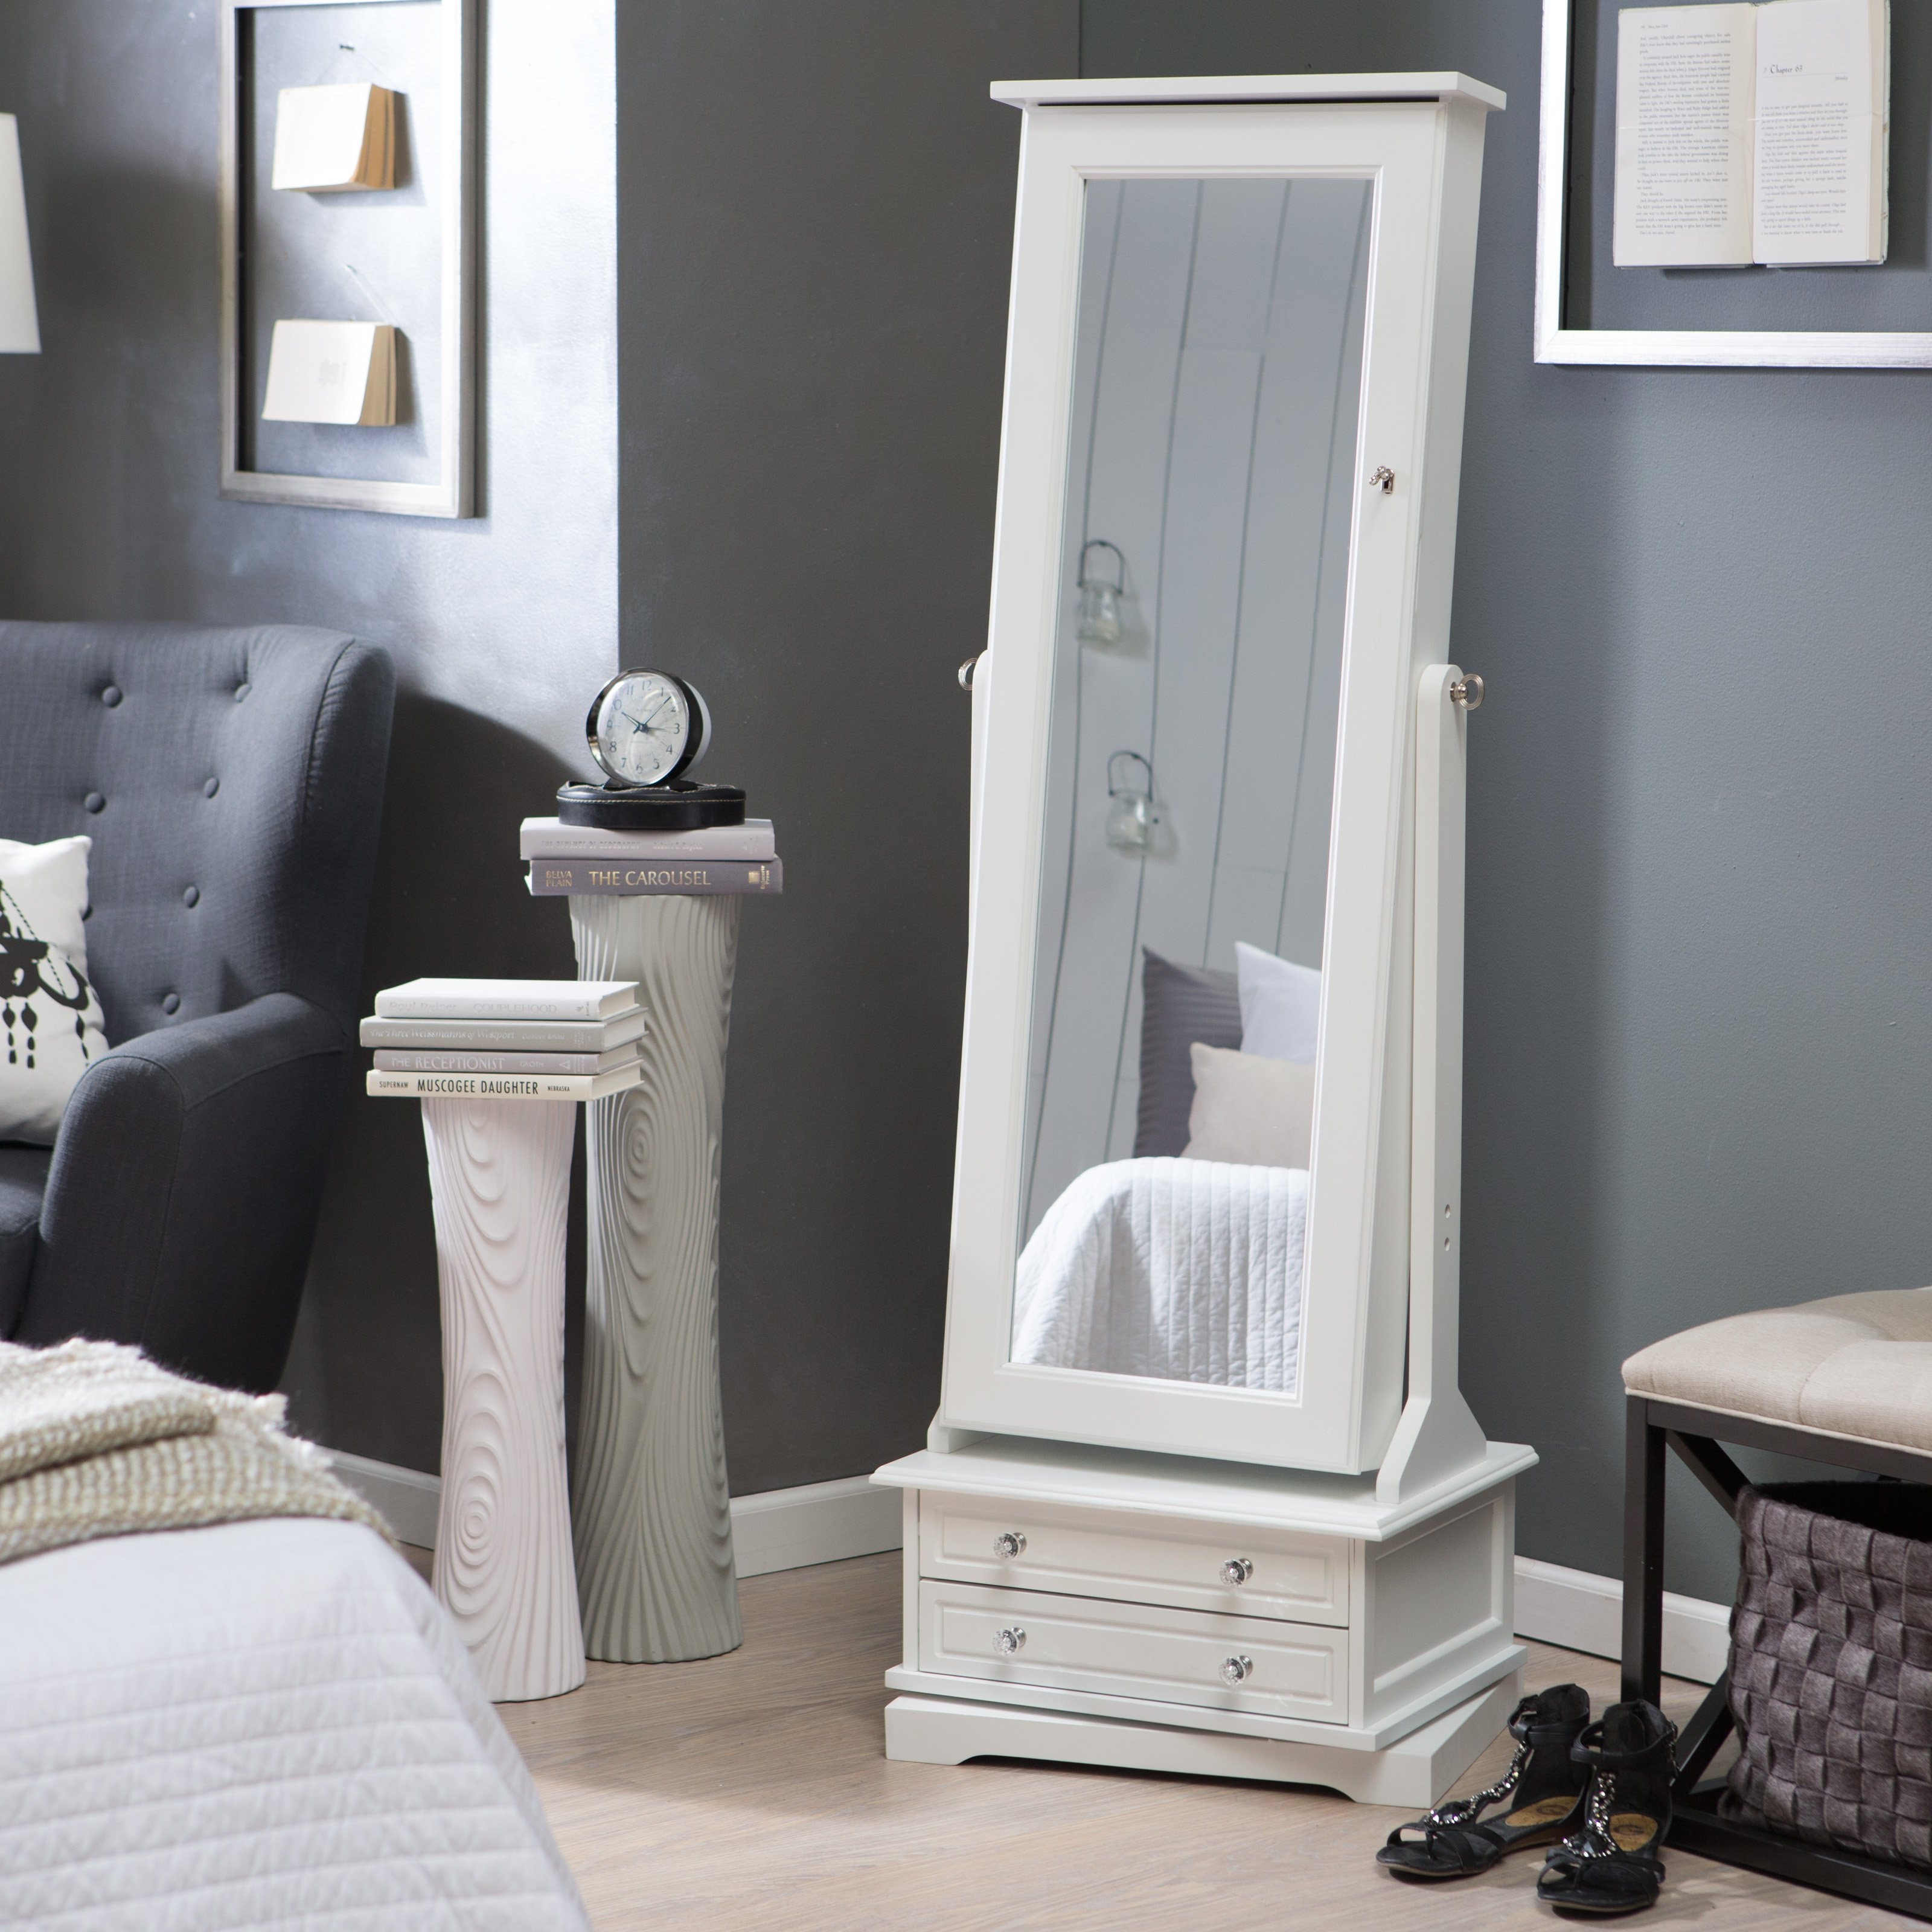 Free Standing White Mirror Full Length Mirror Design Ideas Throughout Long Free Standing Mirror (Image 13 of 15)